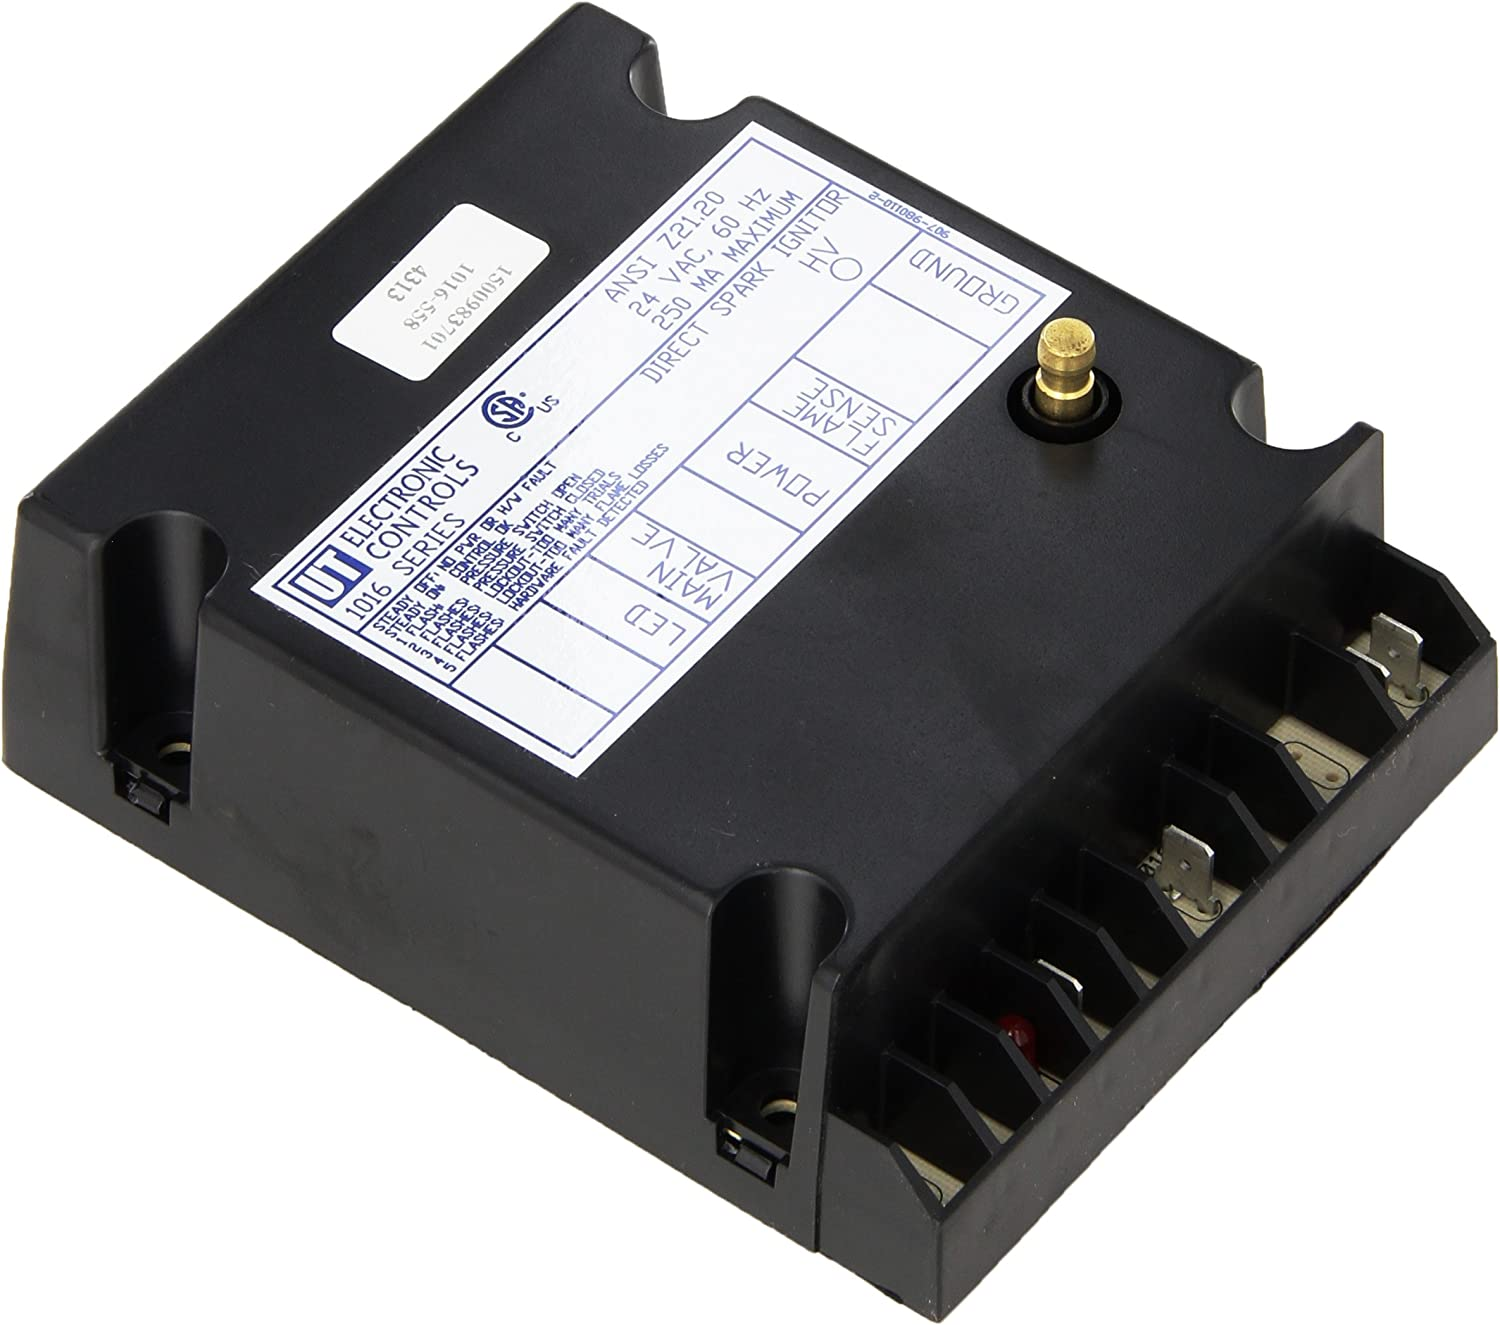 Hayward HAXMOD1930 Control shop Module Replacement Bombing new work H-Seri for